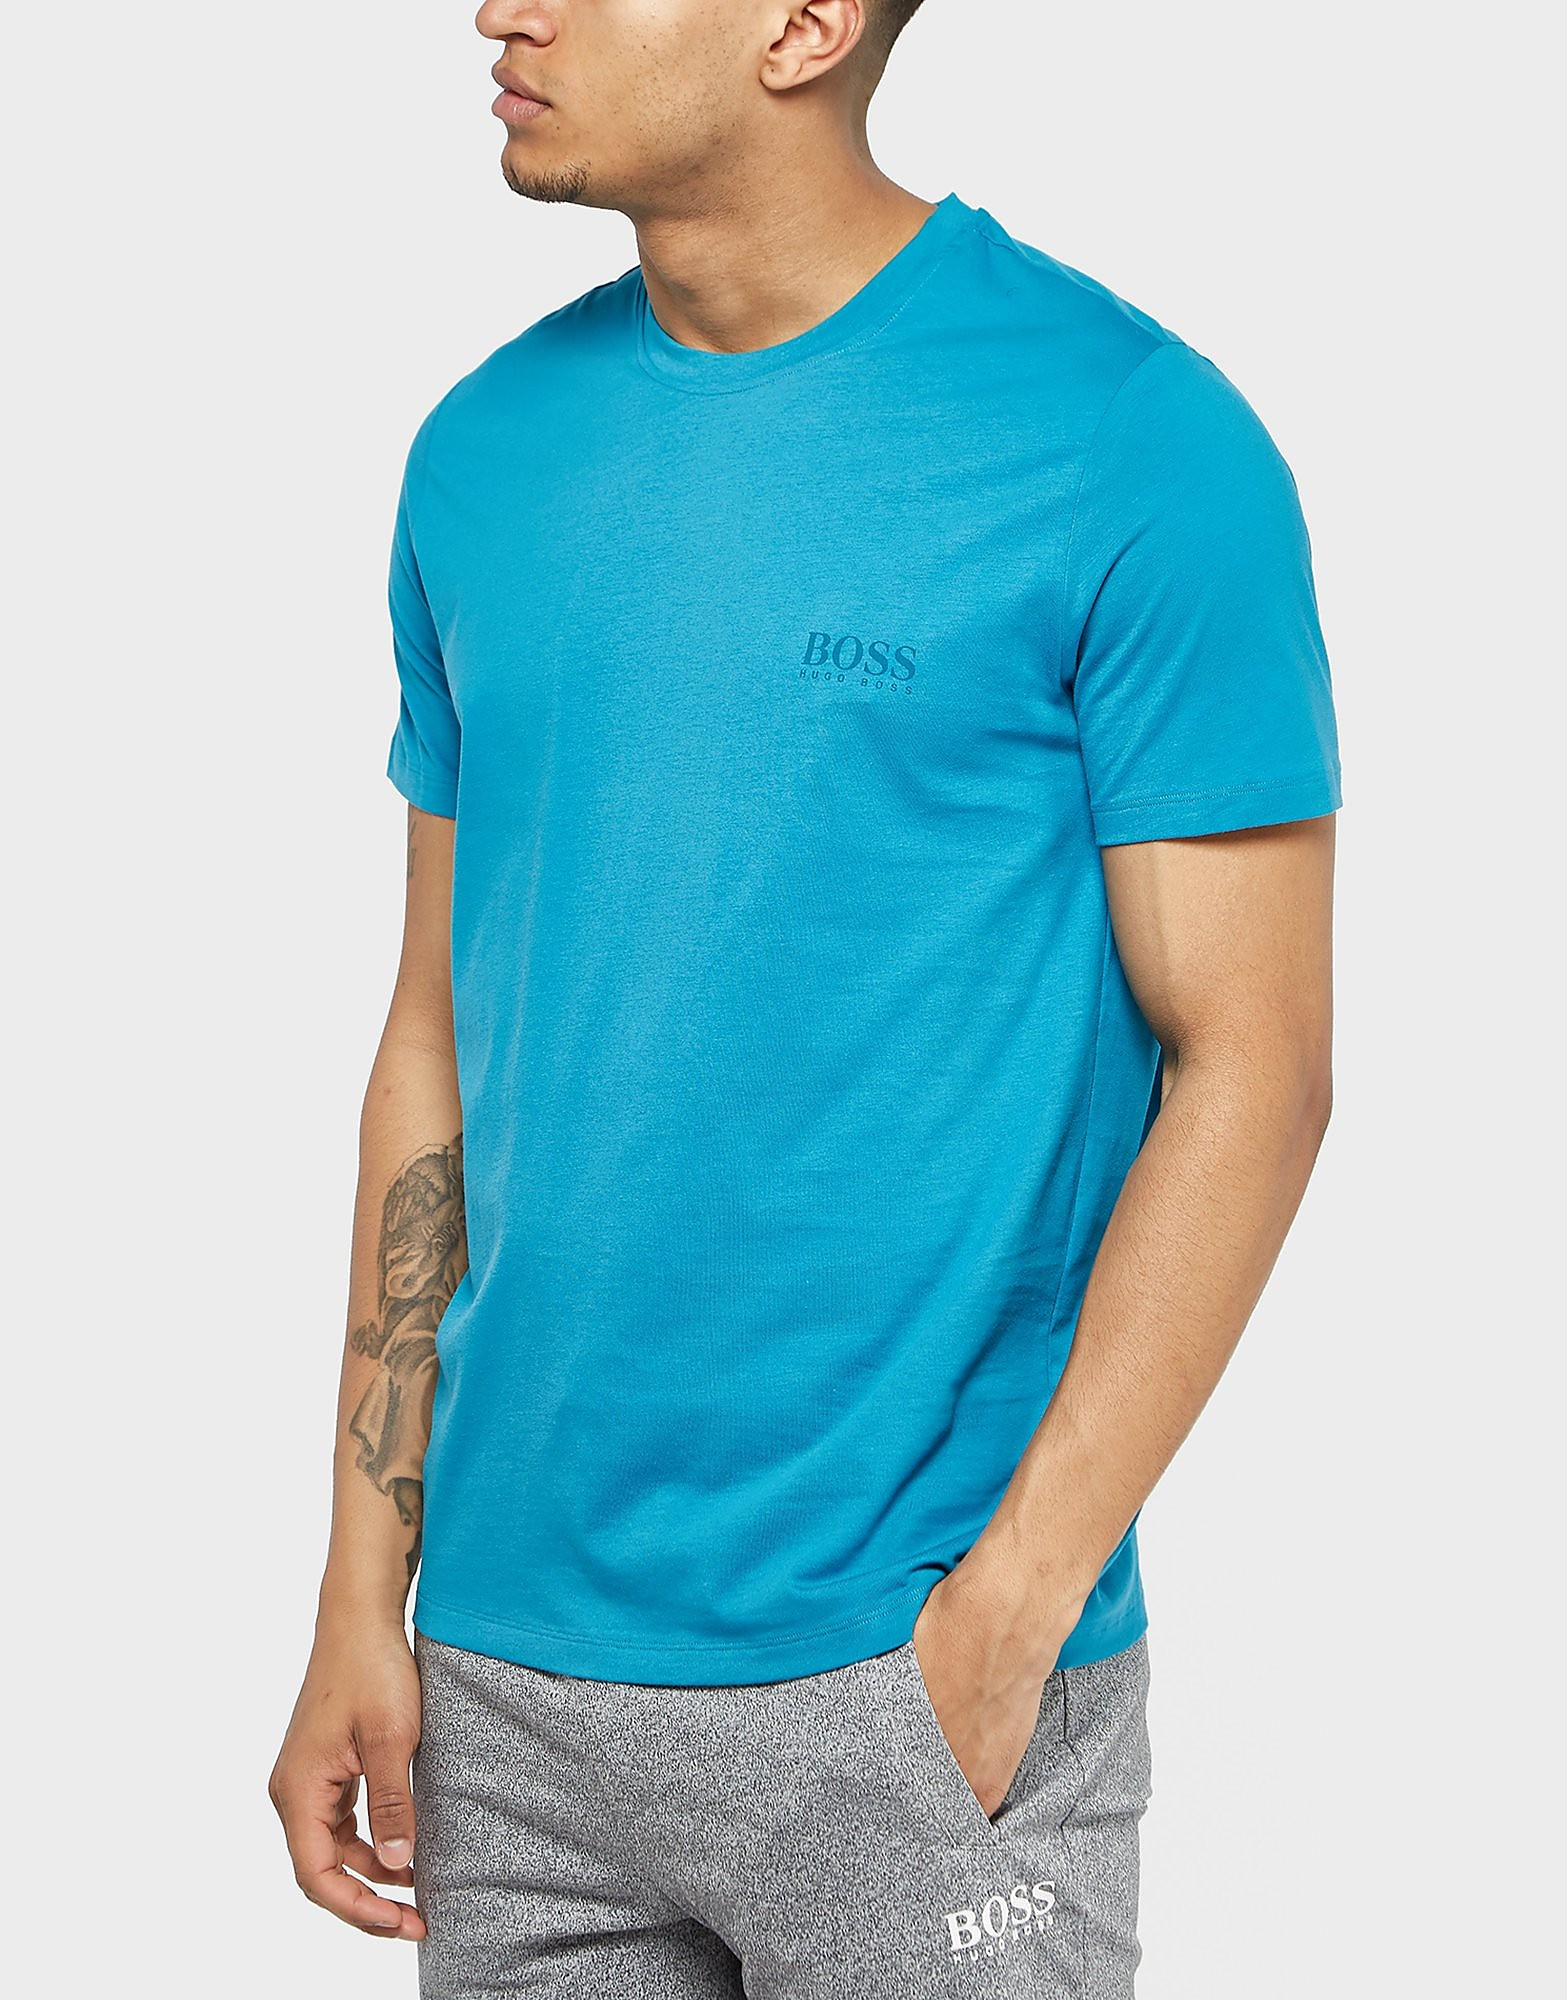 BOSS Tonal Crew Short Sleeve T-Shirt